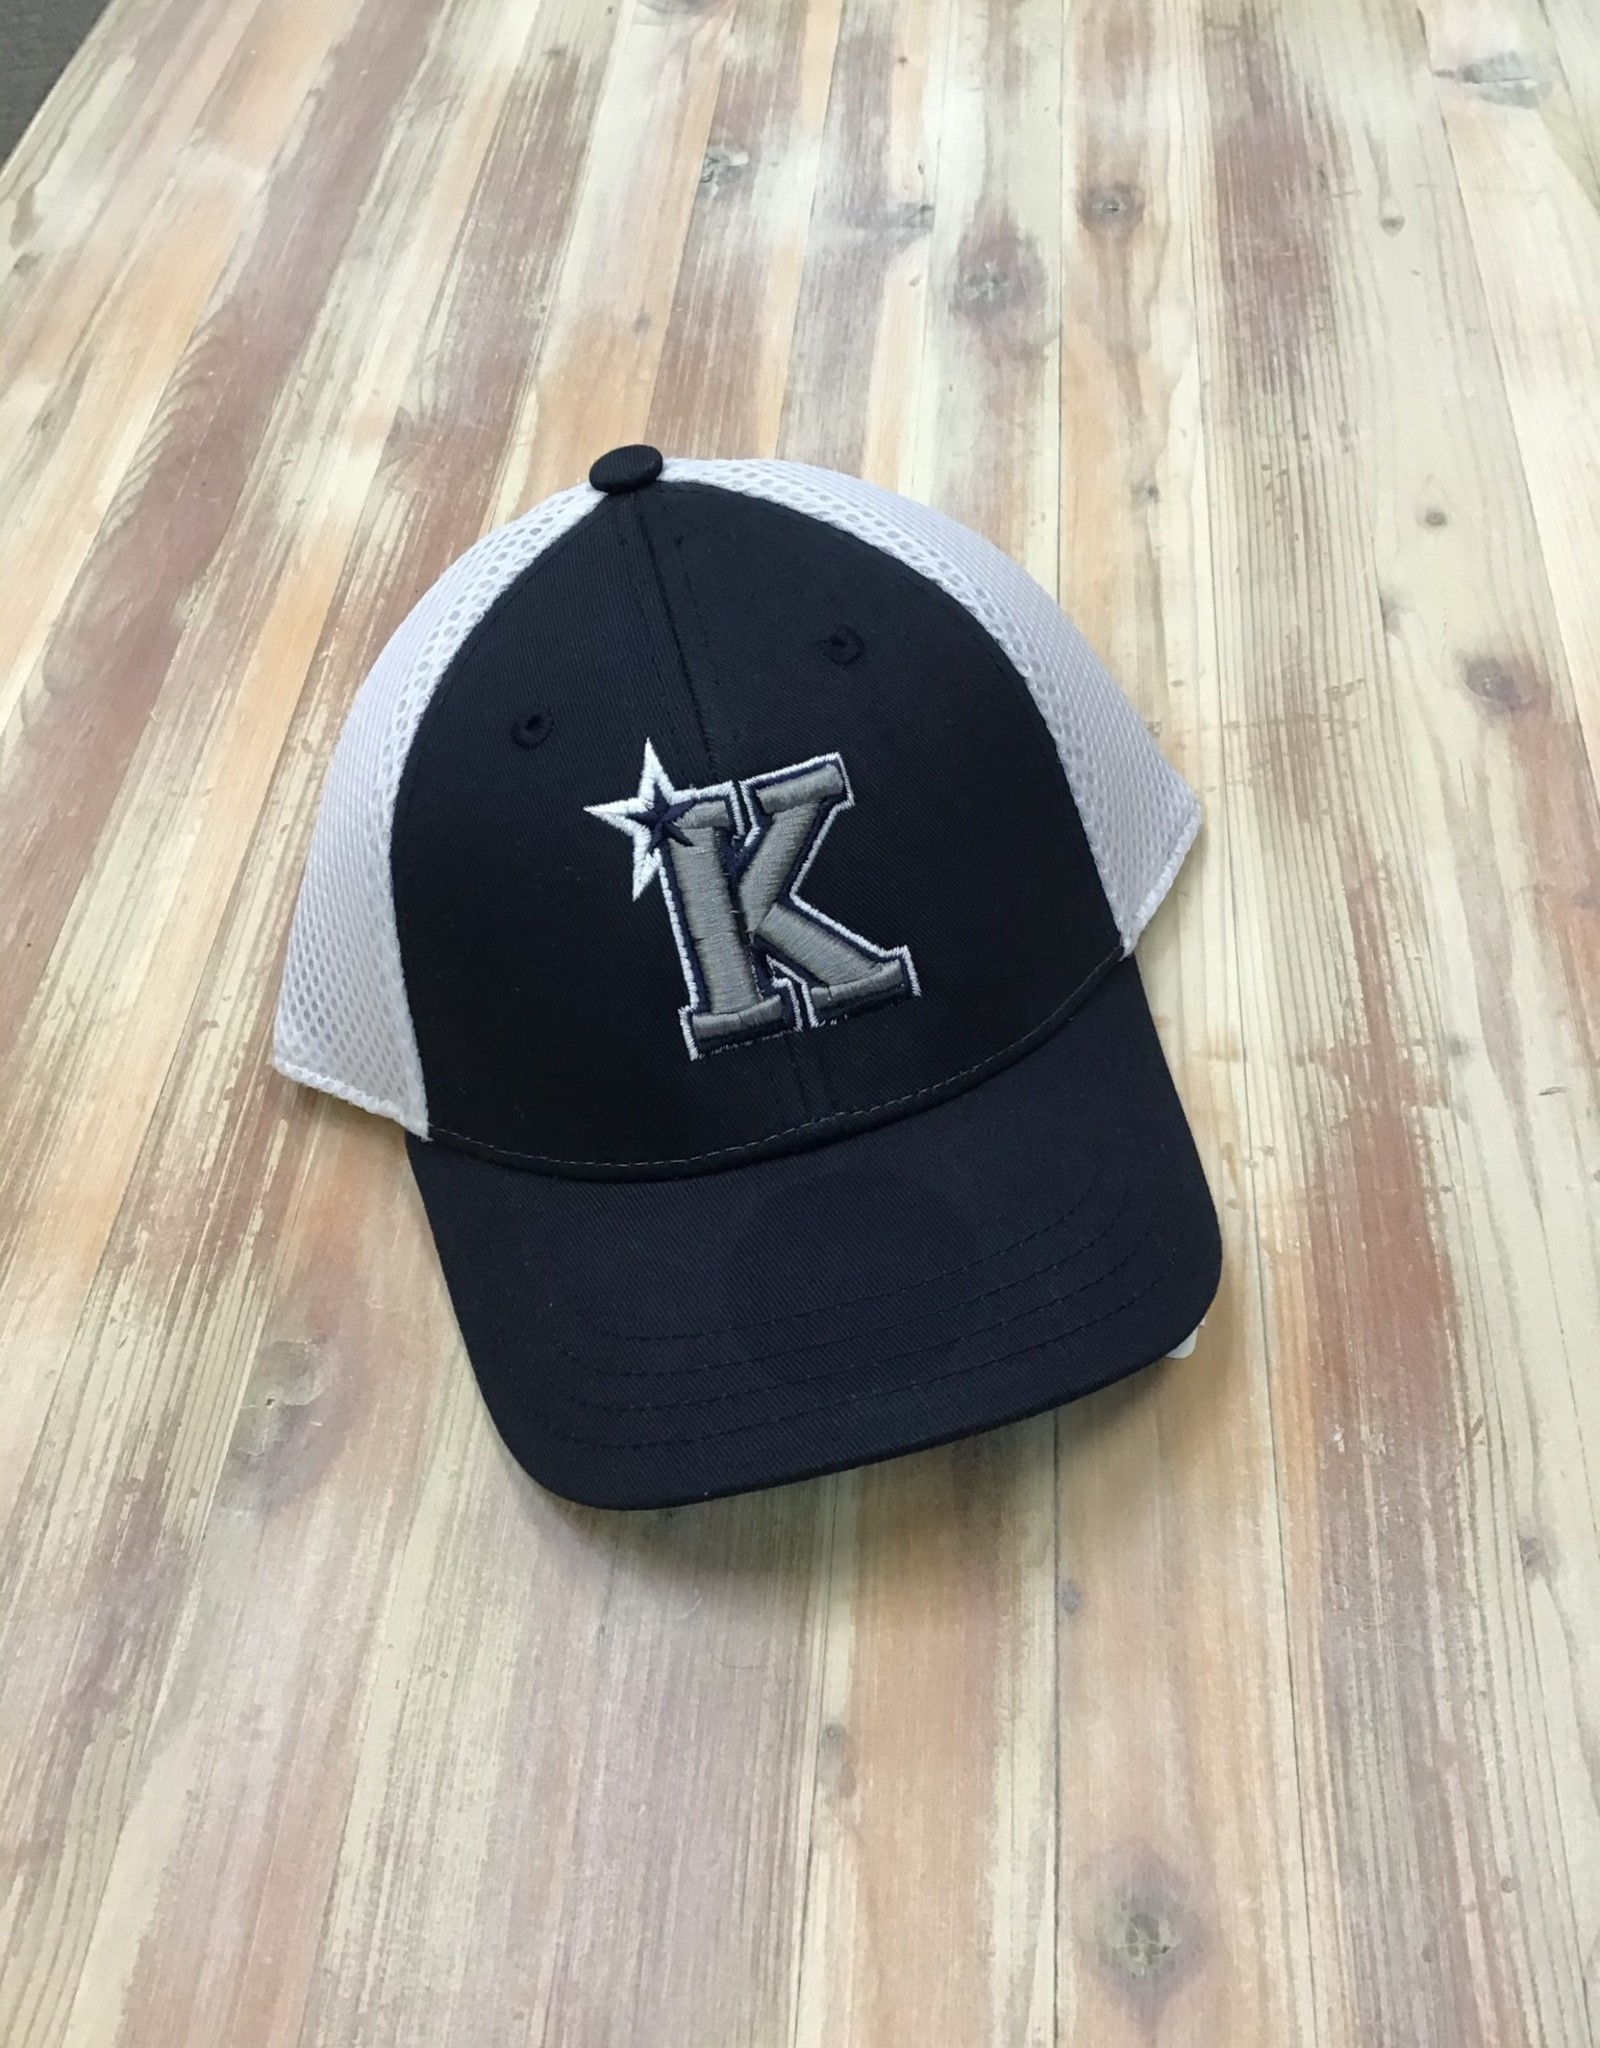 New Era New Era NE302 Killarney Stars Baseball Cap Kids'